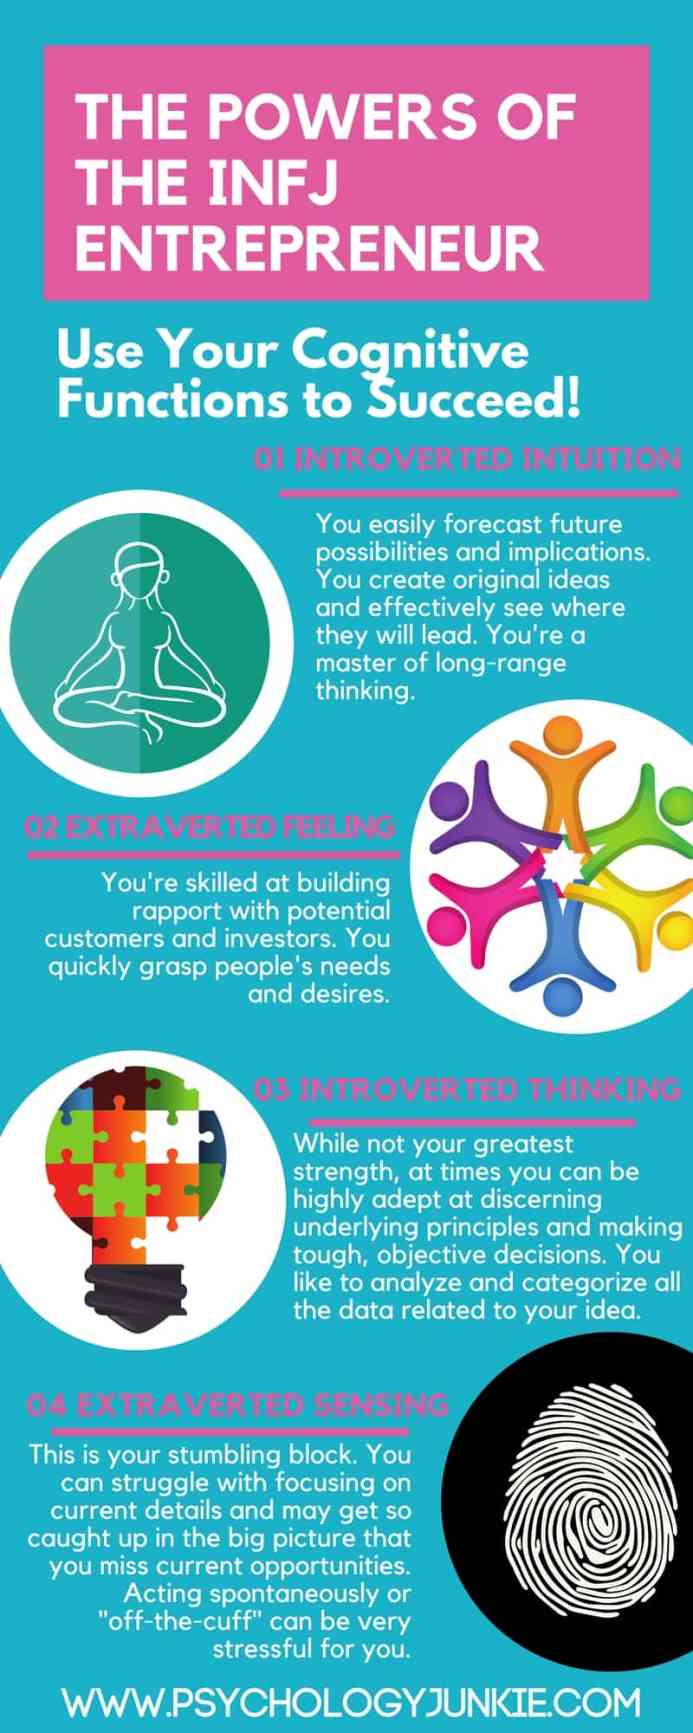 Tips for the #INFJ entrepreneur! #MBTI